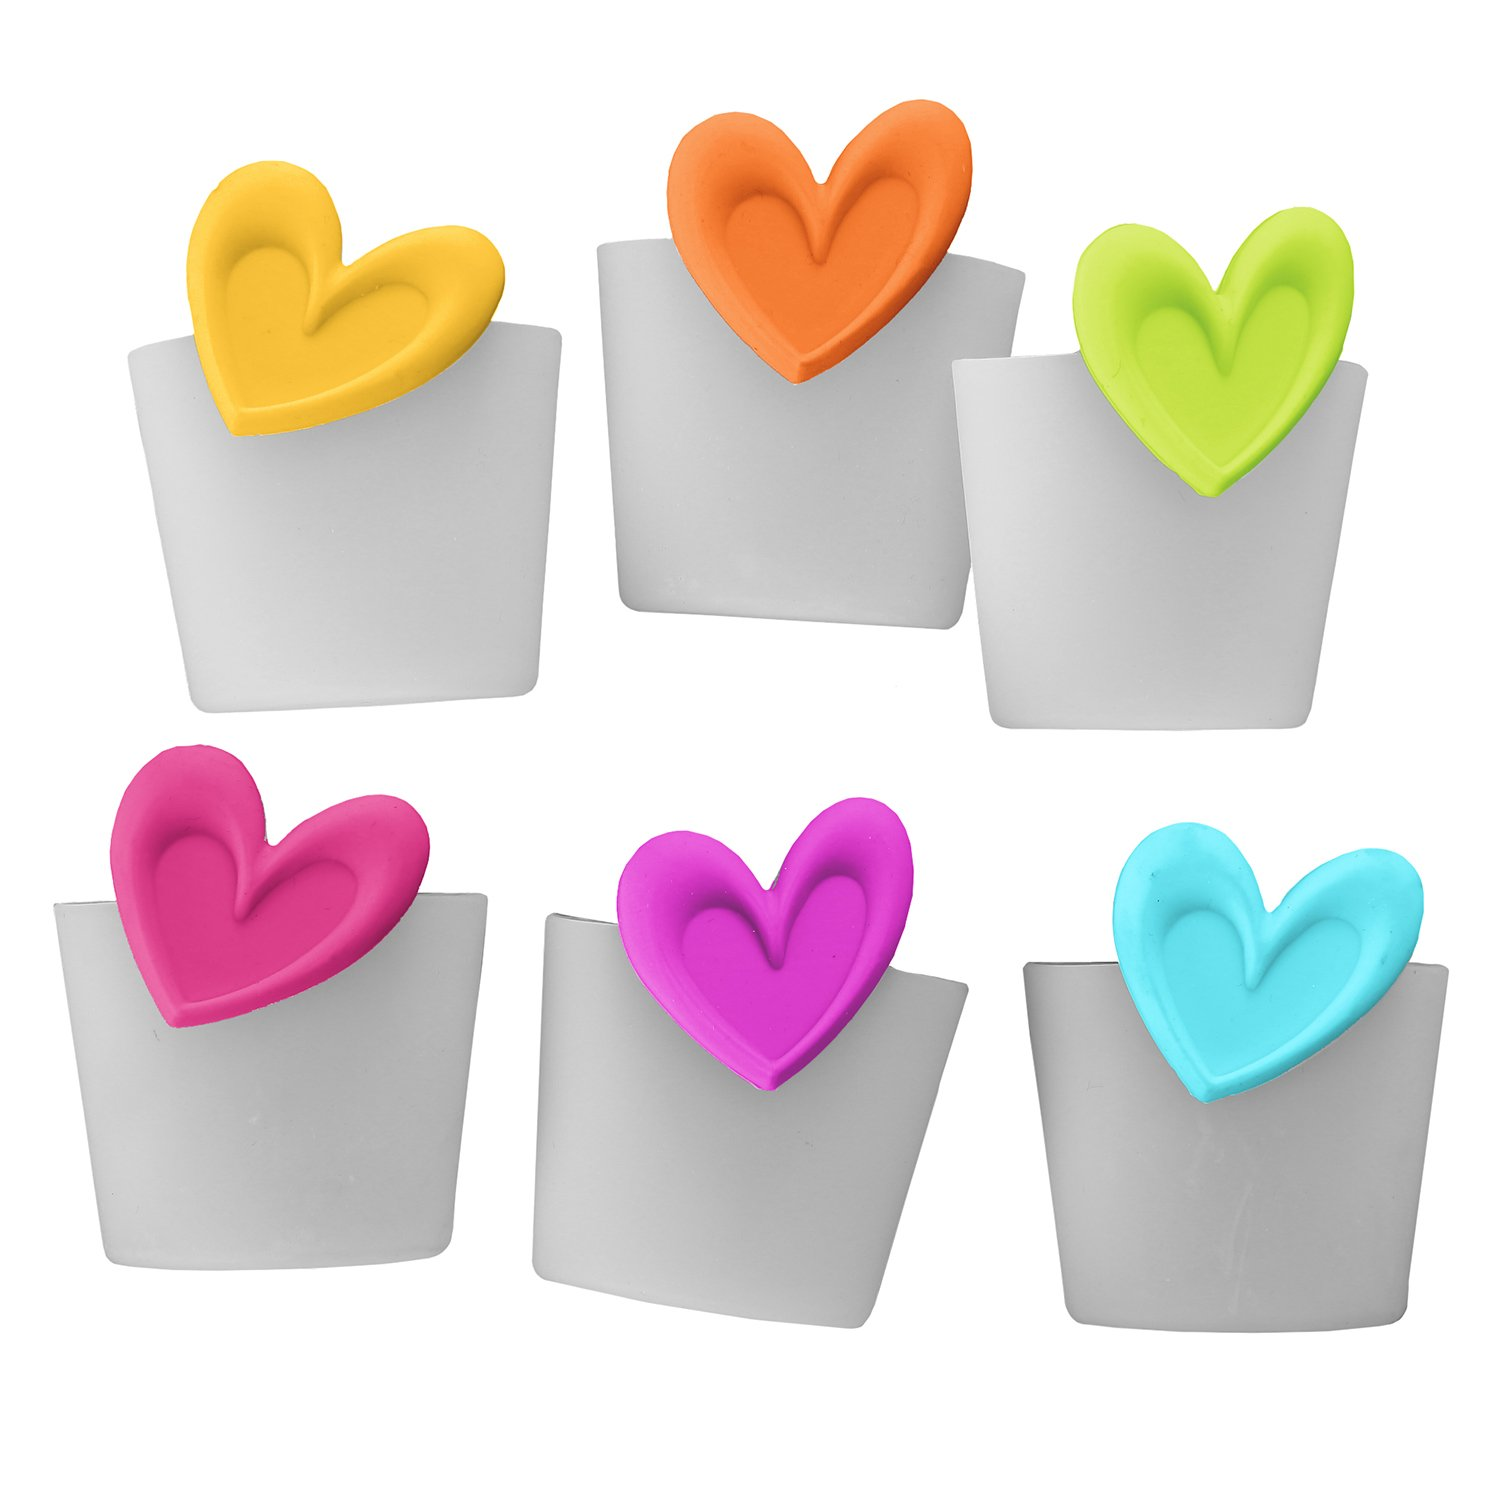 Teabloom Heart Shaped Tea Infusers in 6-Pack Value Set - FDA Approved Silicone with Colorful Heart Design - Great Gift for Tea Lovers - Gift Wrapping Available